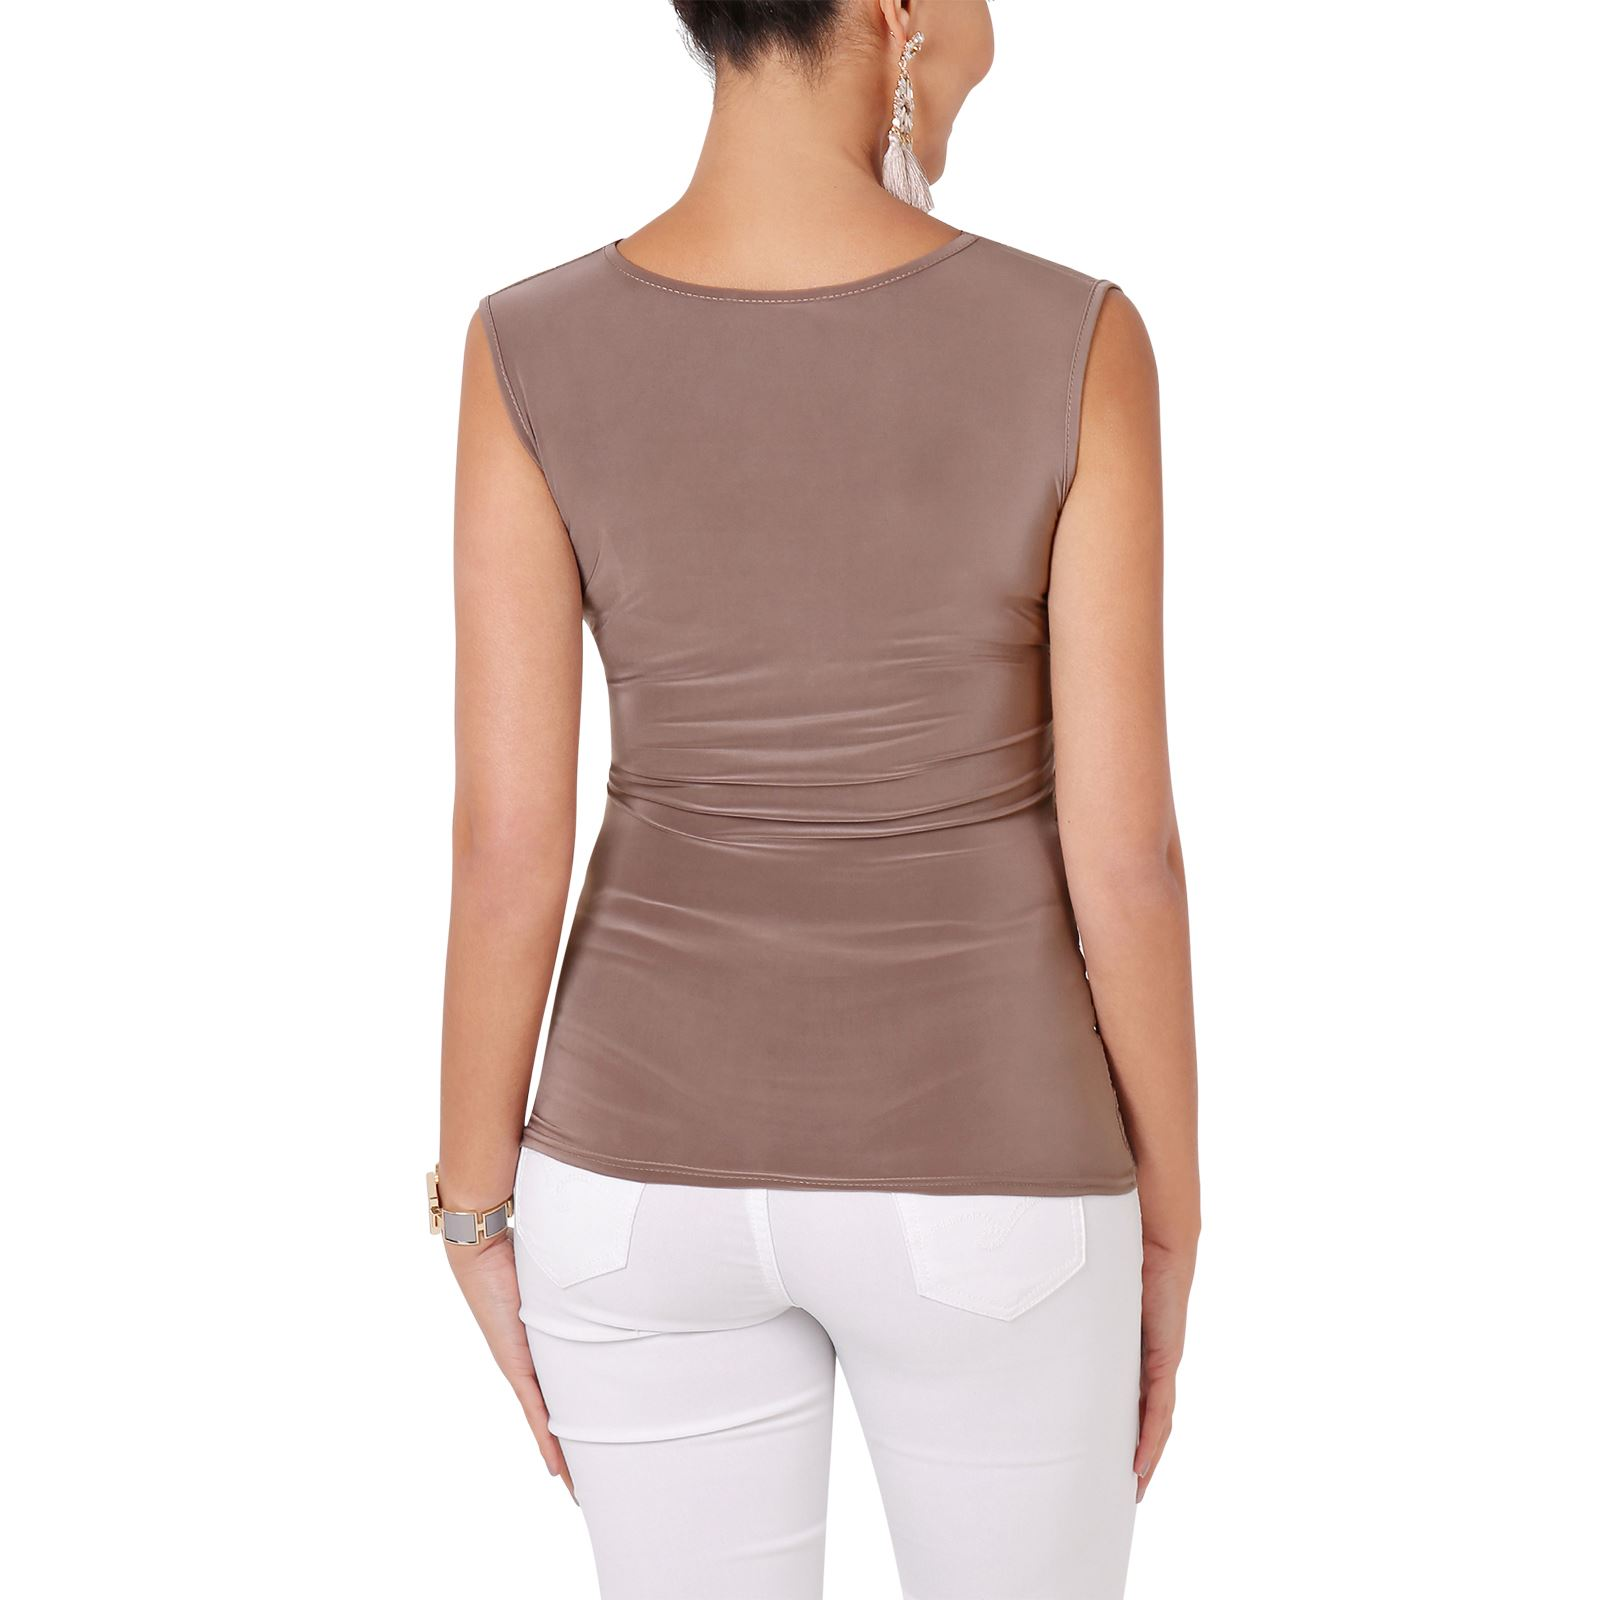 Womens-Evening-Tops-V-Neck-Ladies-Stretch-Sleeveless-Ruched-Tunic-Party-Tank-Top thumbnail 10